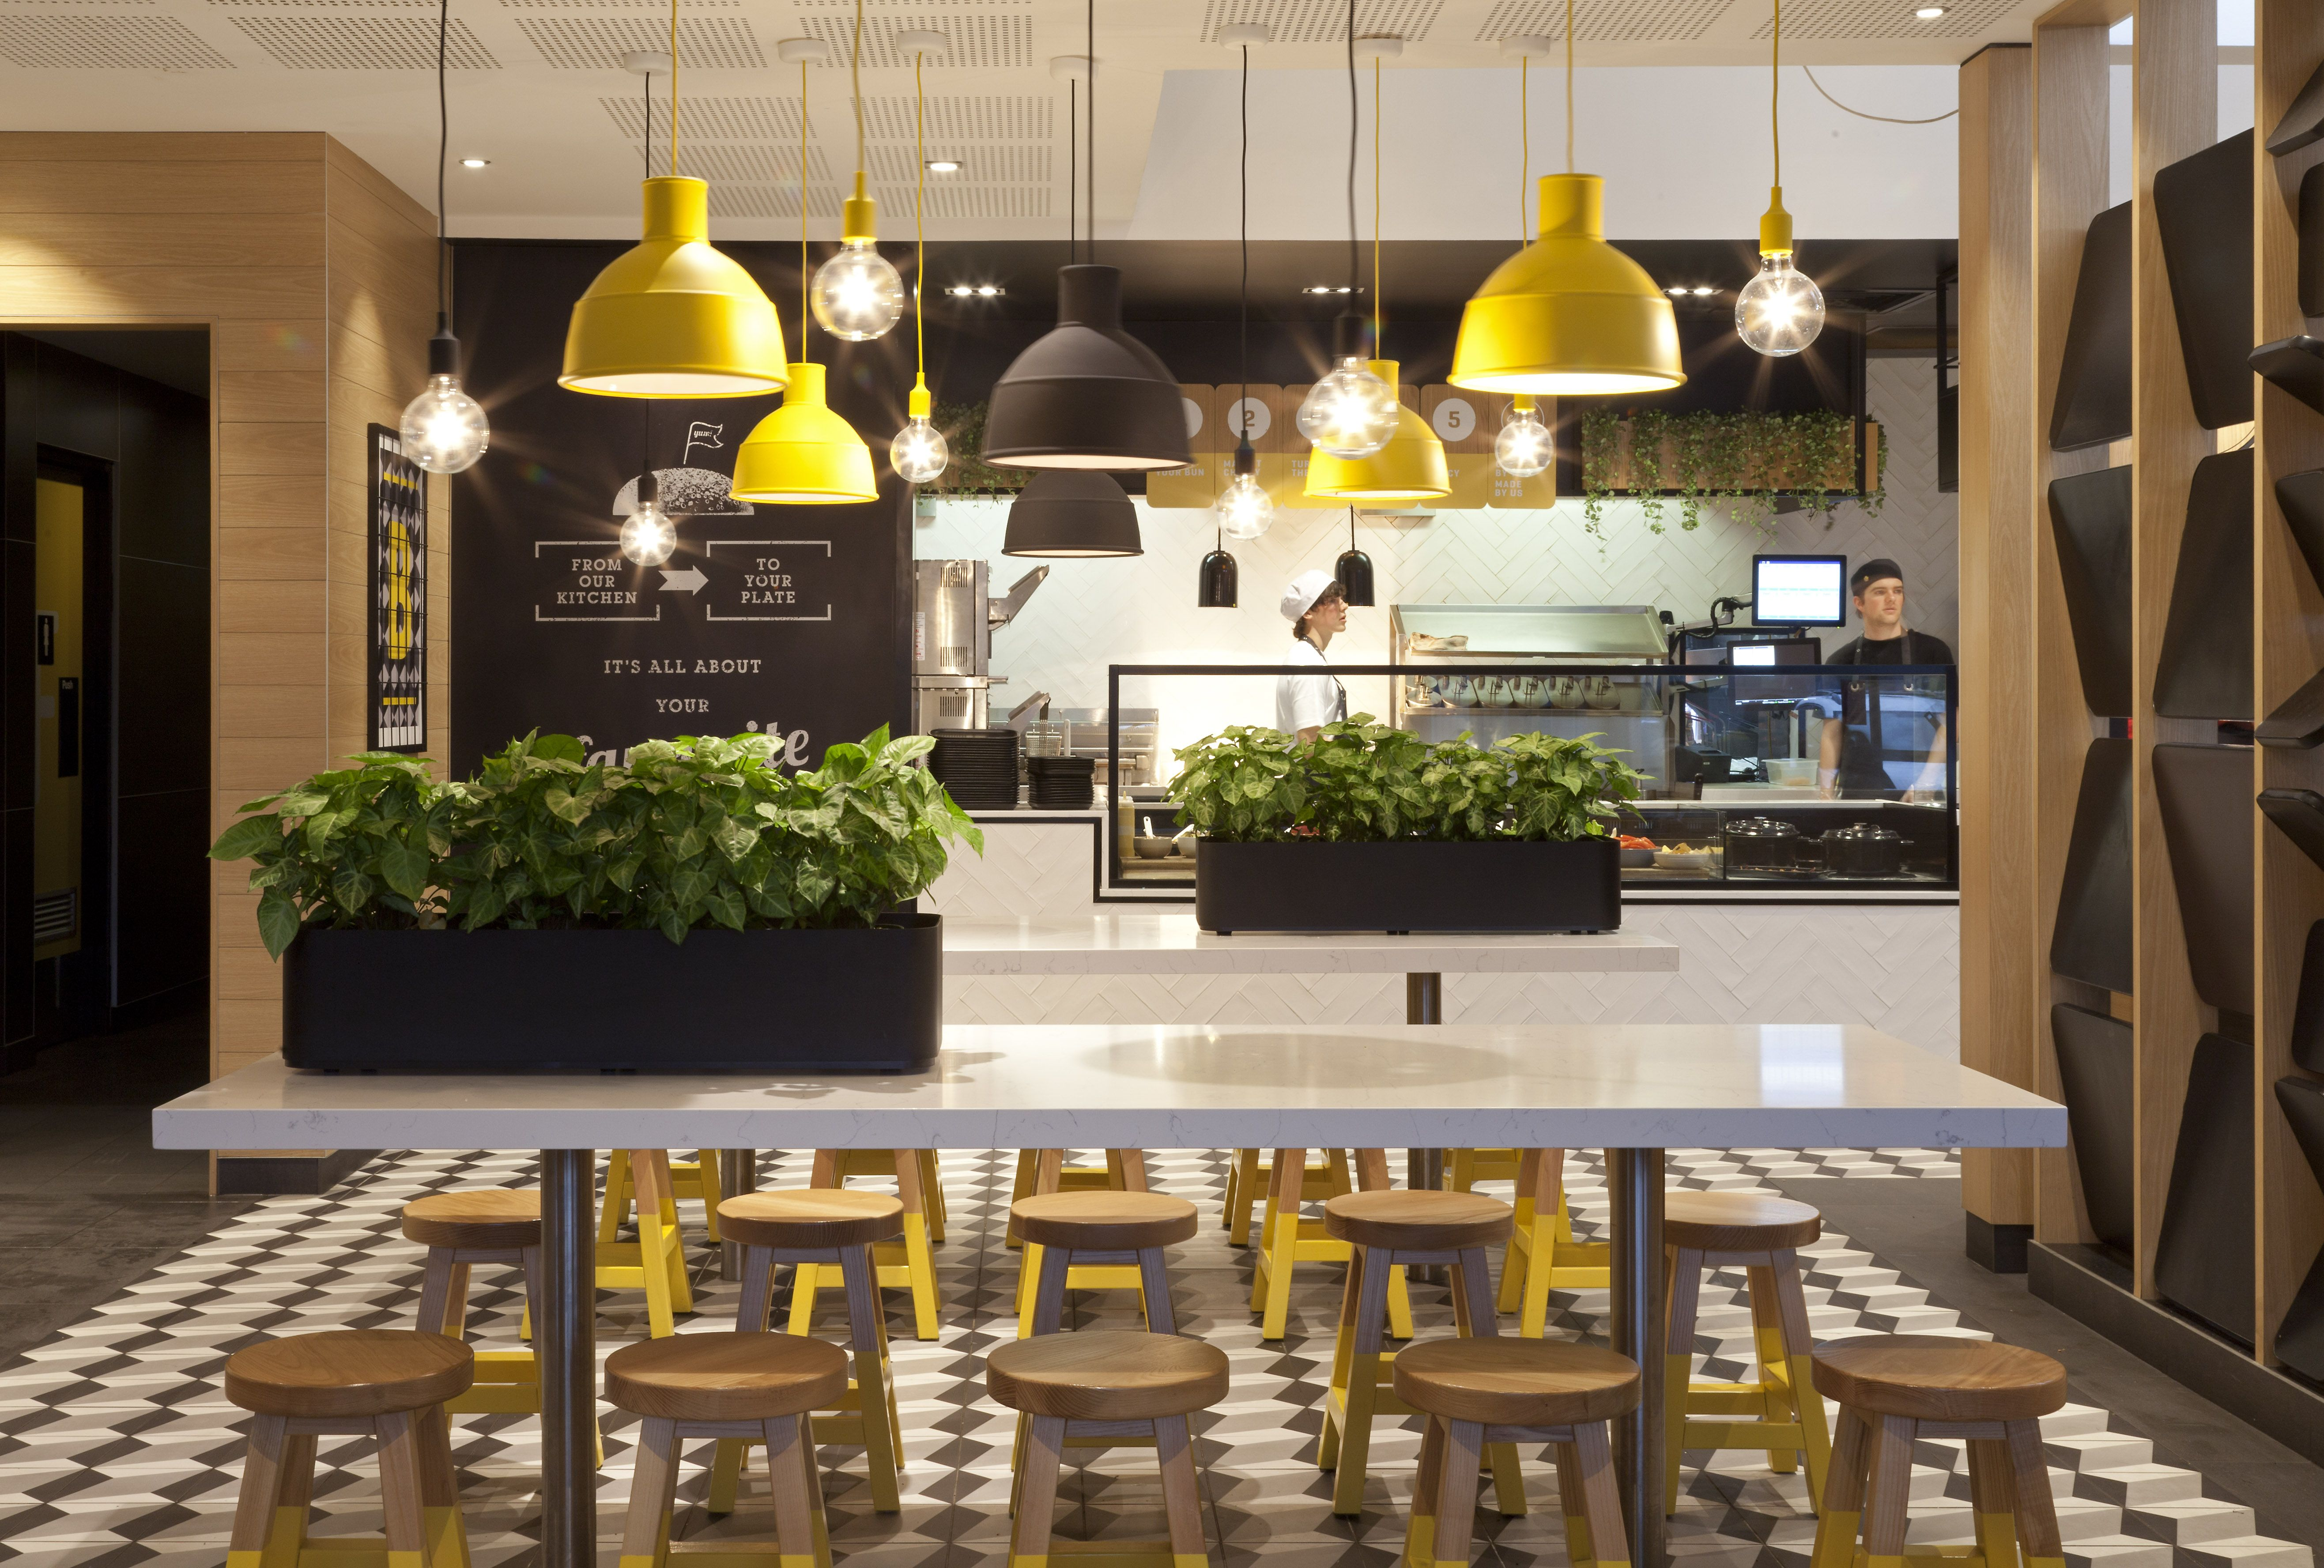 The new look mcdonalds restaurant at thornleigh nsw is